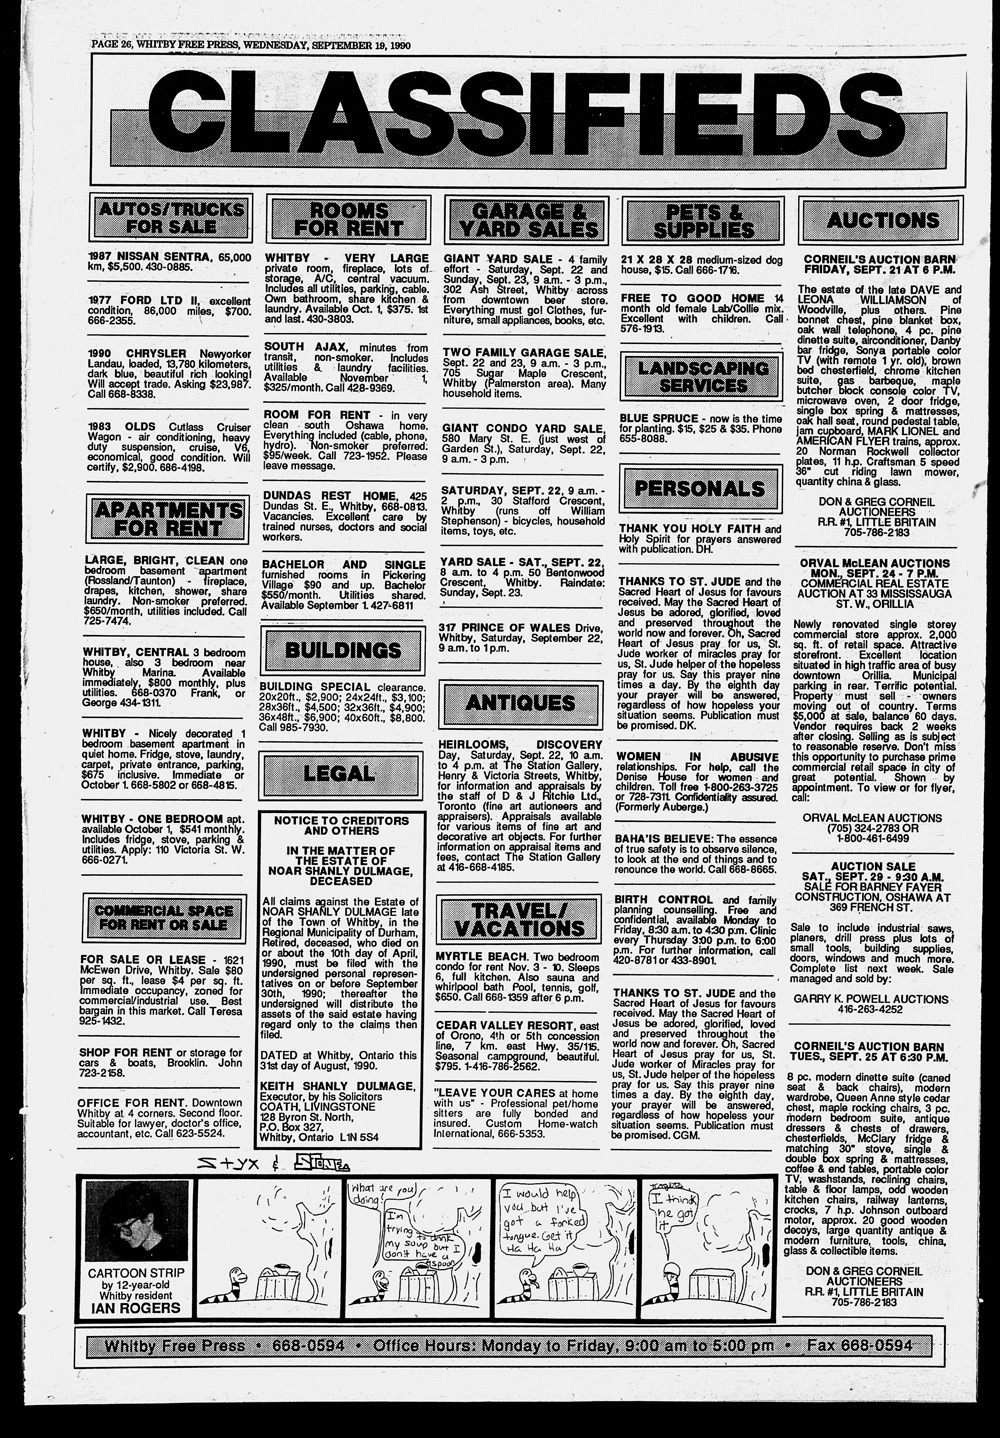 Whitby Free Press, 19 Sep 1990